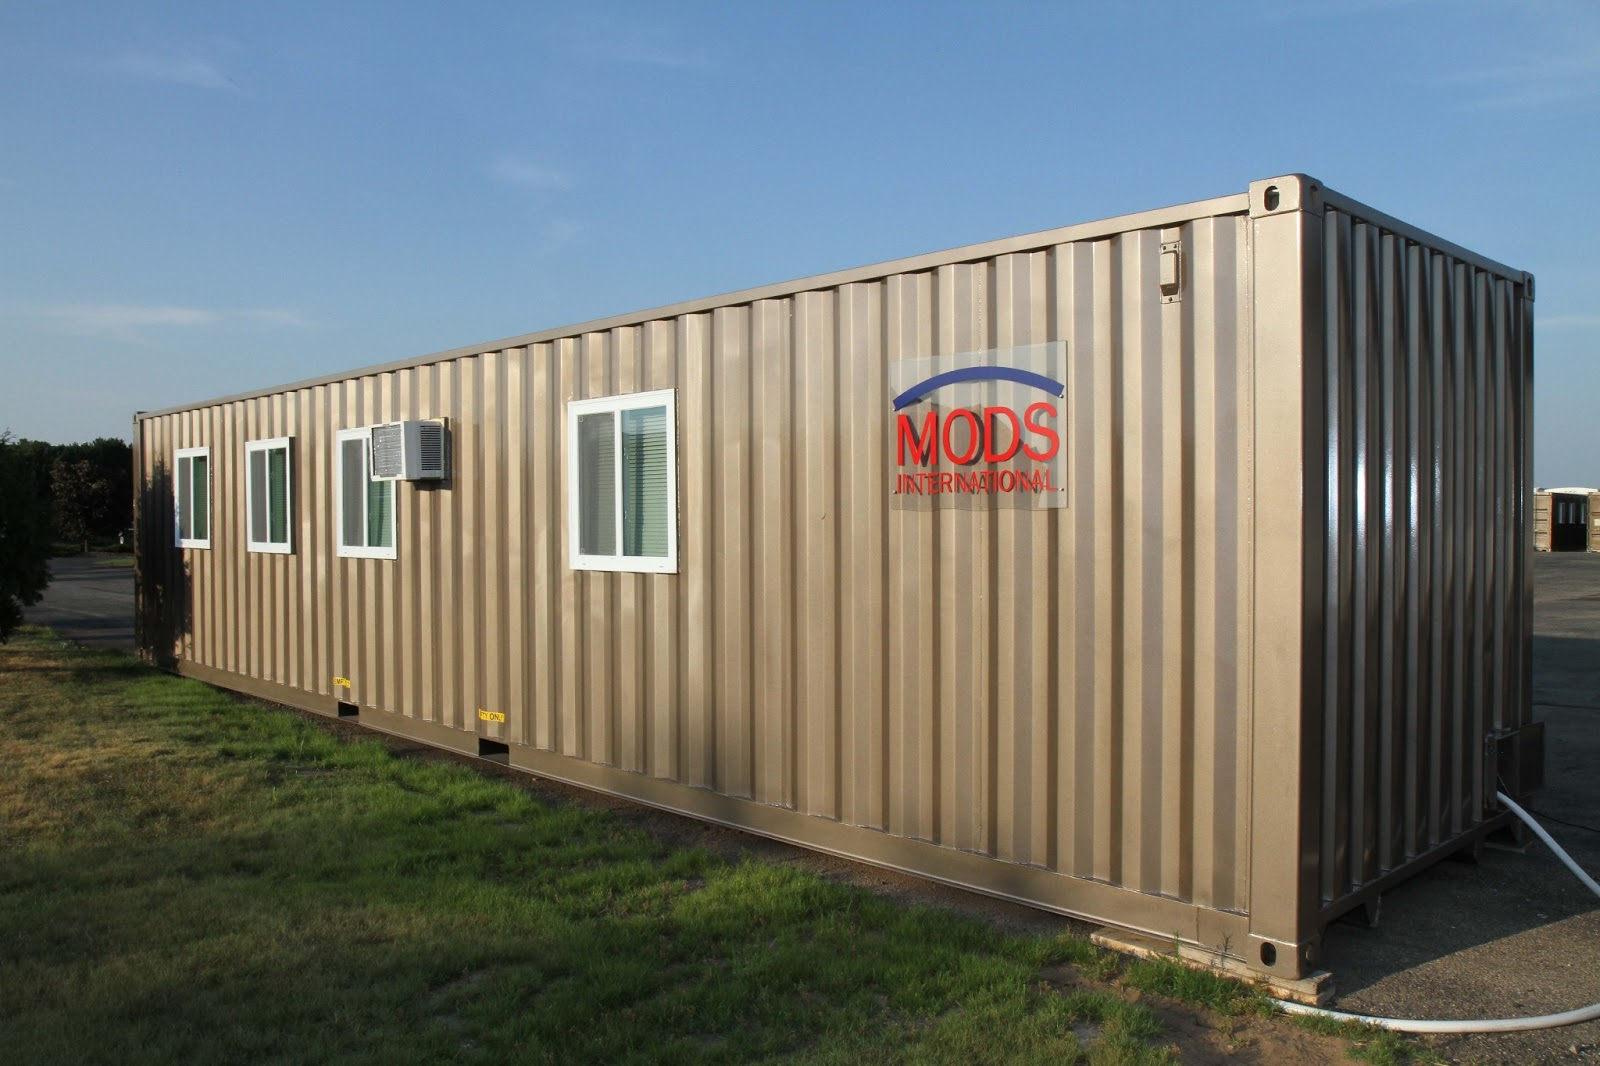 Modular home builder will fema catch shipping container fever - Mobile home container ...